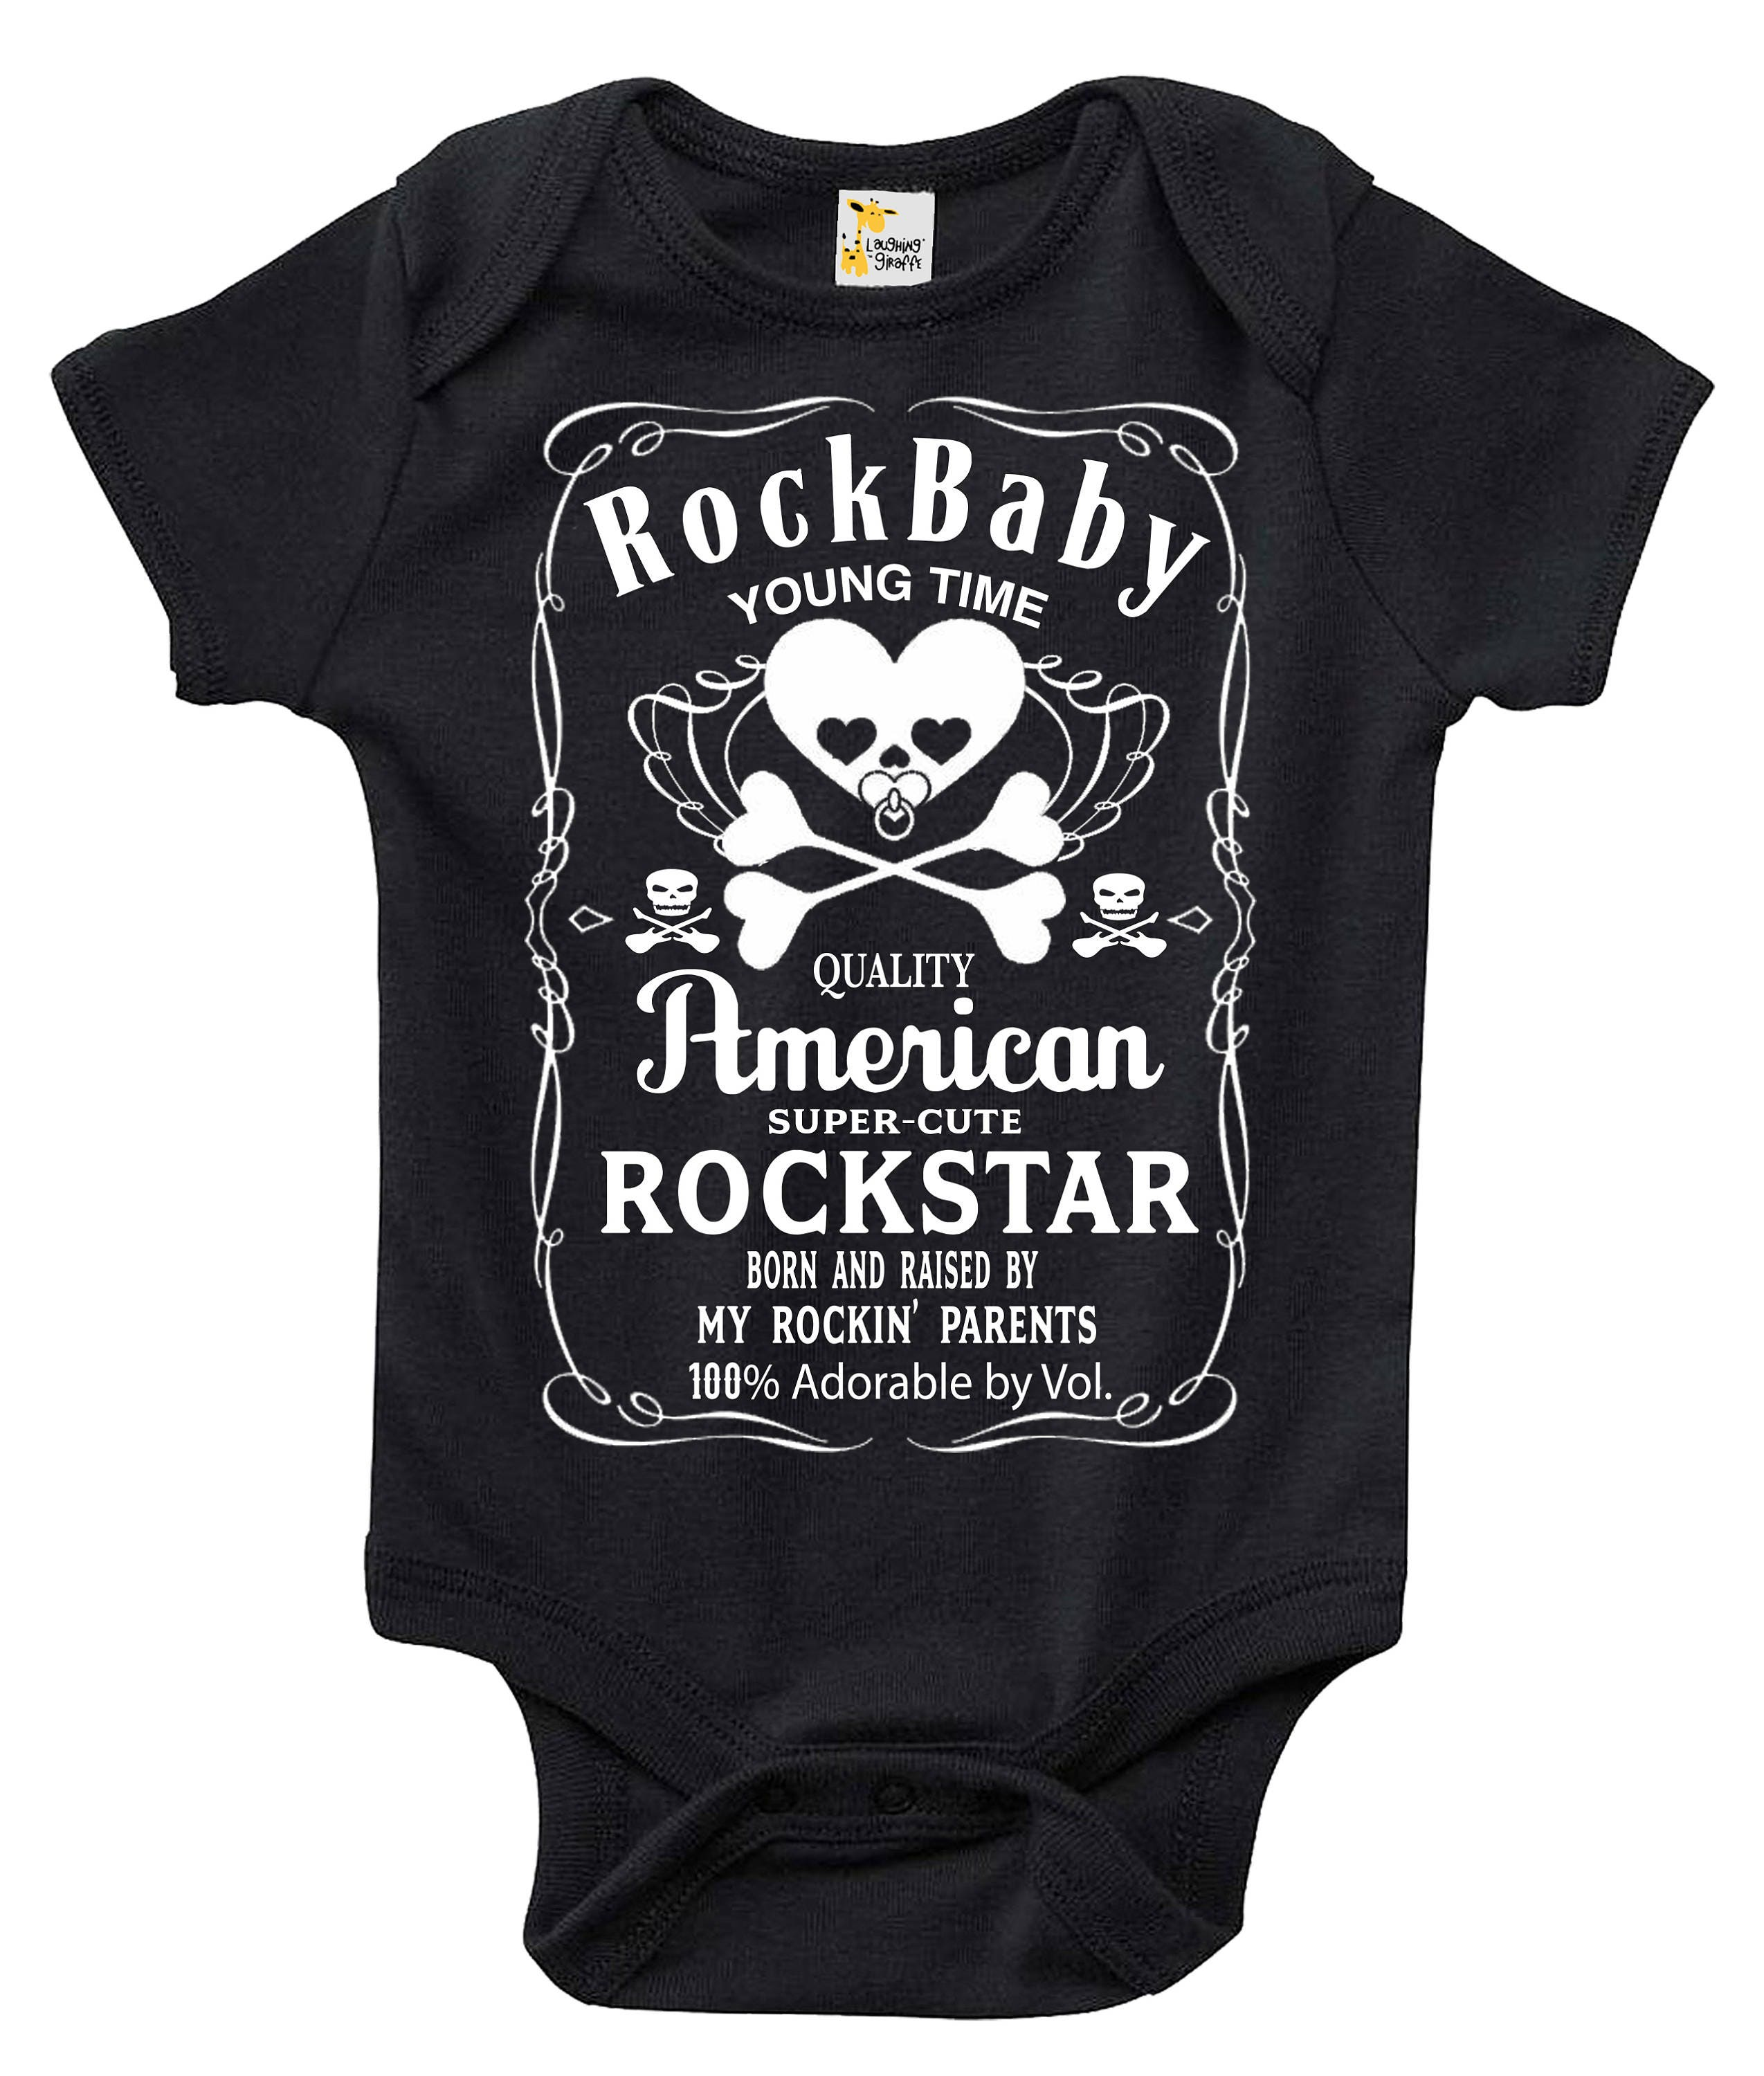 RockBaby Baby Bodysuit Cute Baby Clothes